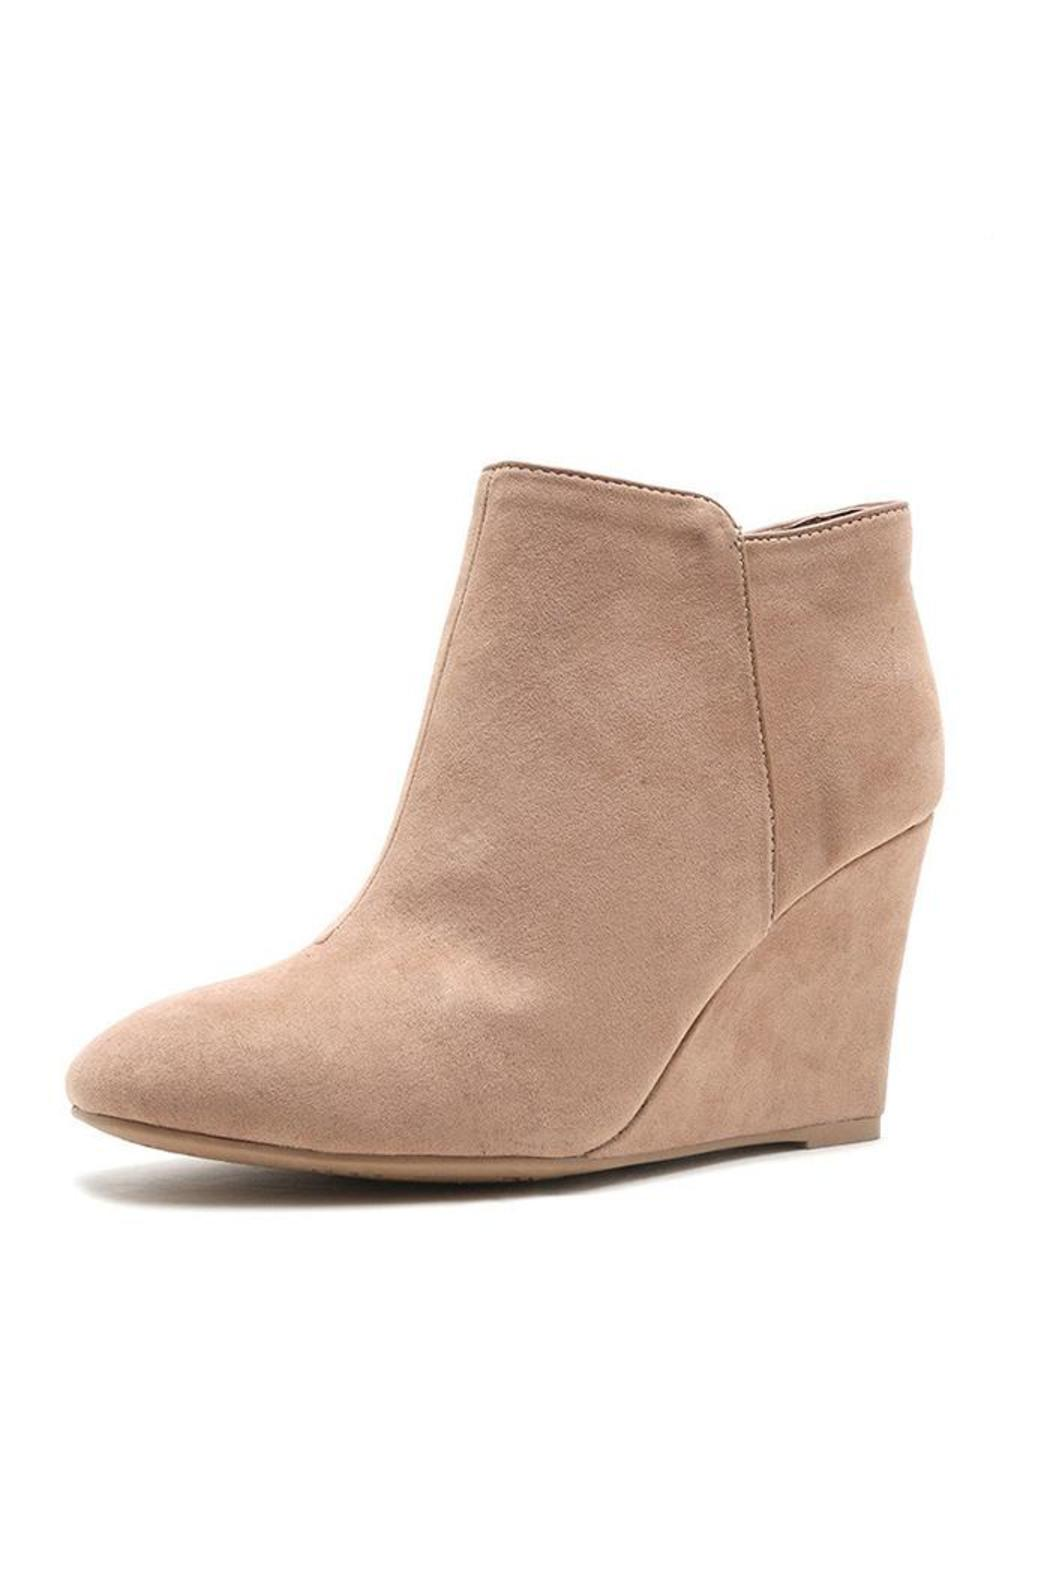 Qupid Vermont Wedge Boots - Main Image